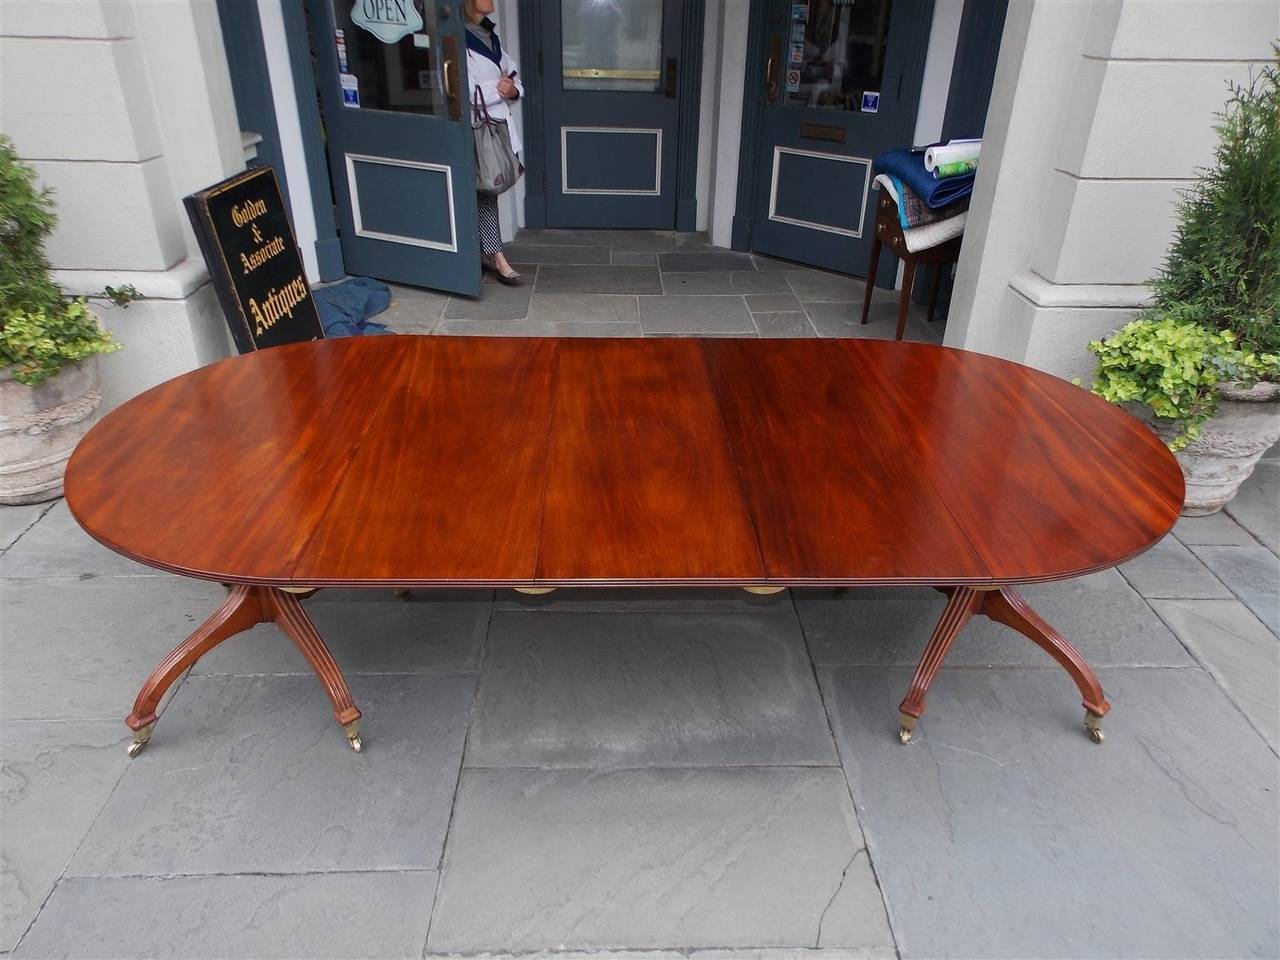 English Mahogany Double Pedestal Dining Table, Circa 1800 In Excellent Condition For Sale In Charleston, SC